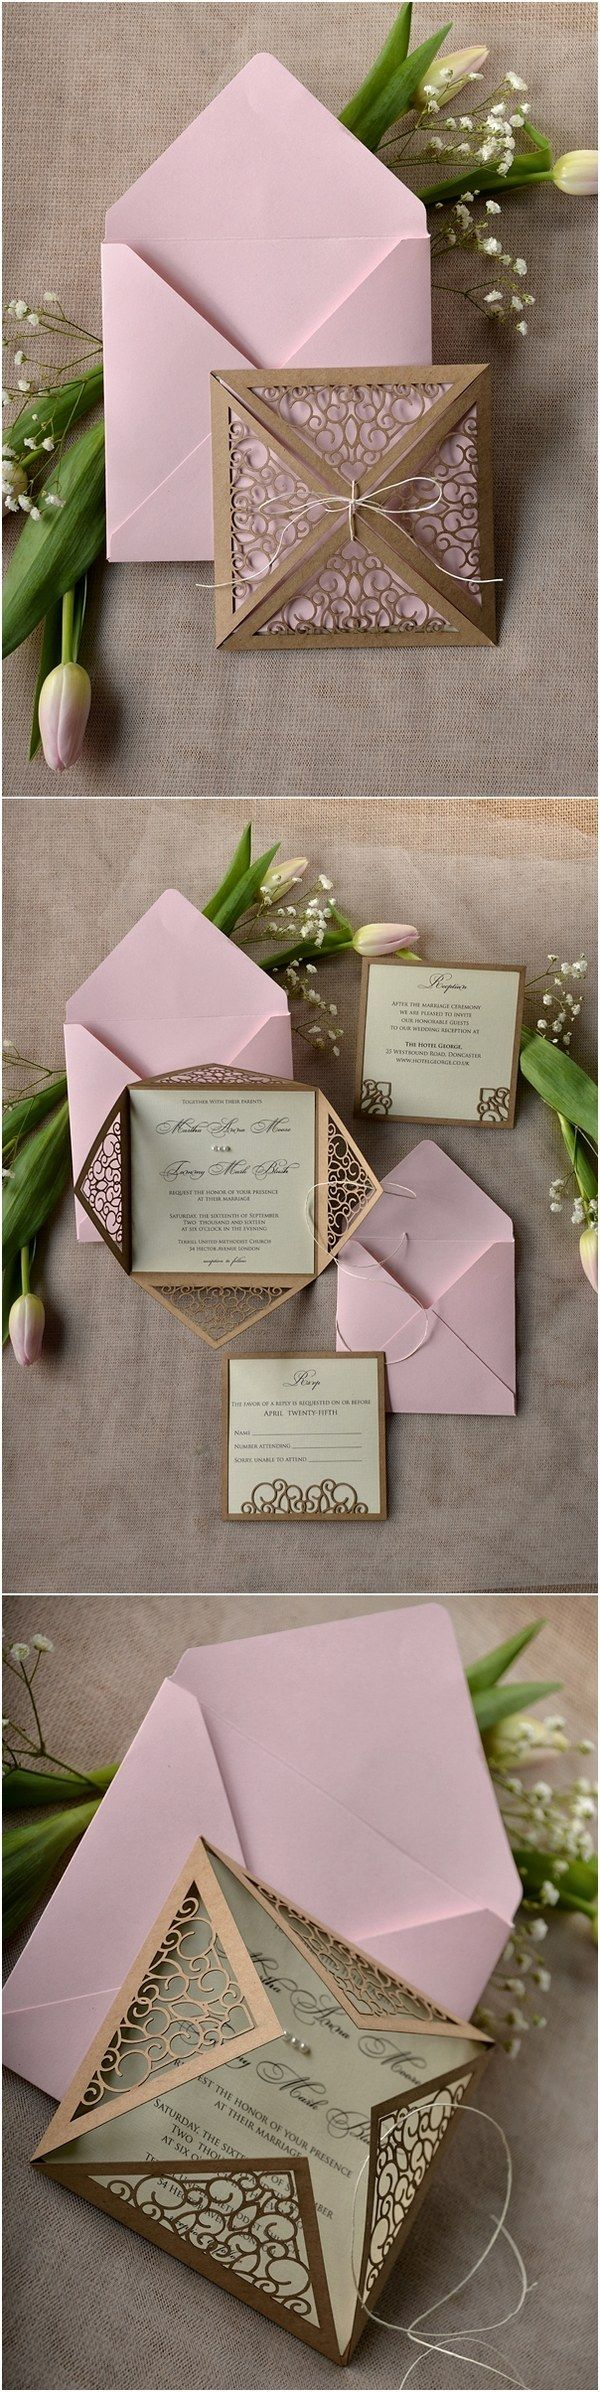 purple white silver wedding invitations%0A Rustic brown and pink leaser cut wedding invitations